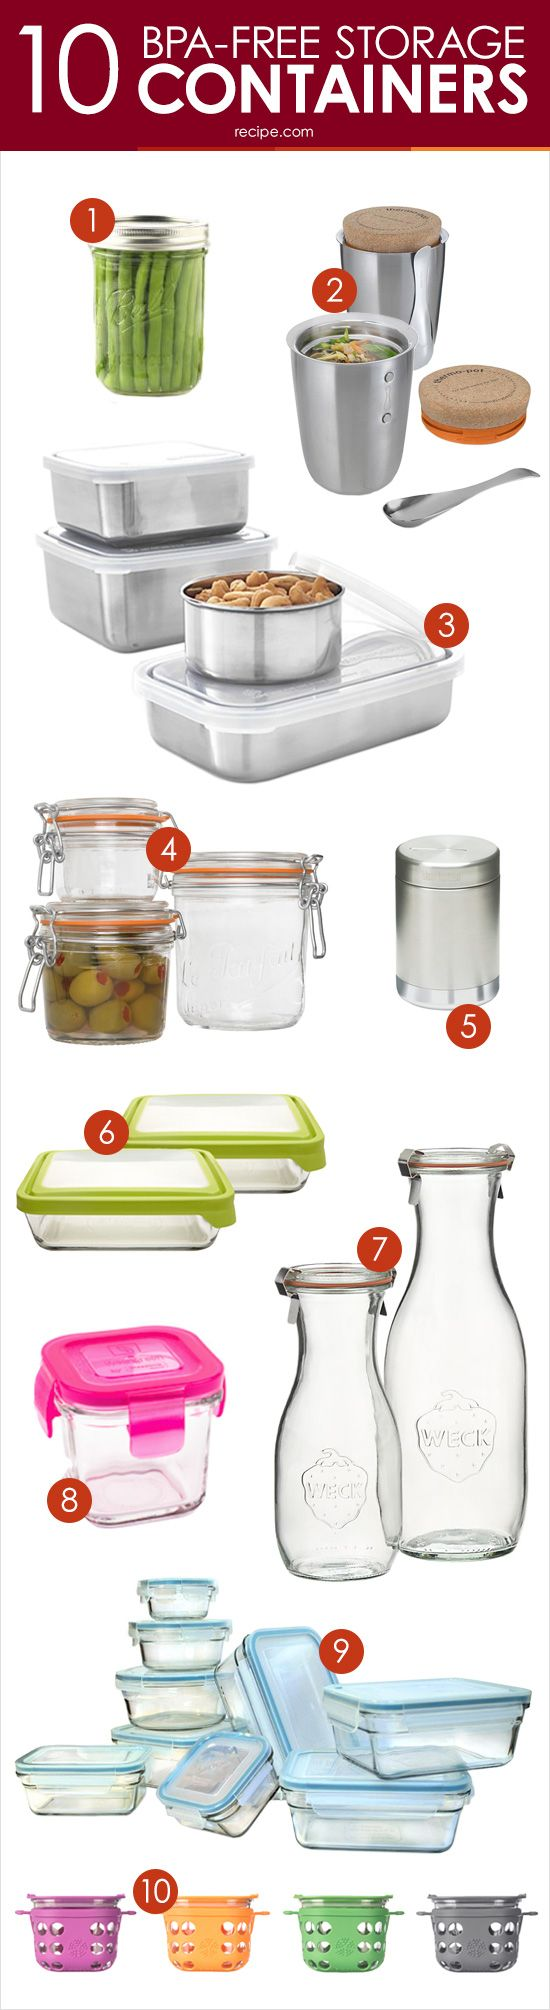 Our Favorite Food Storage Containers Pretty Functional and Really